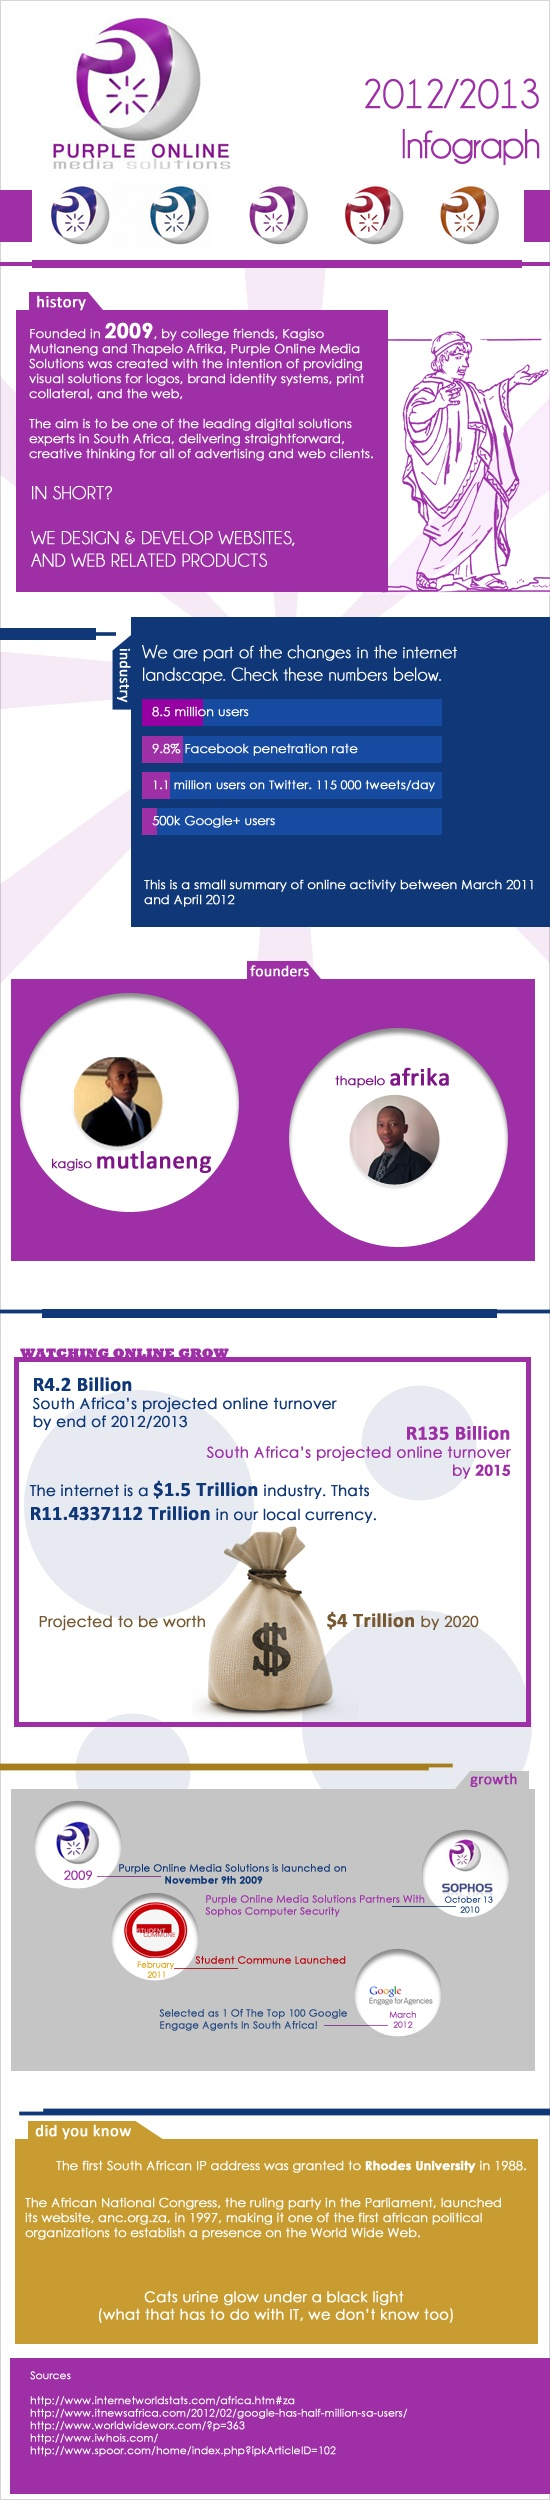 Purple Online Media Solutions 2012/2013 Infograph